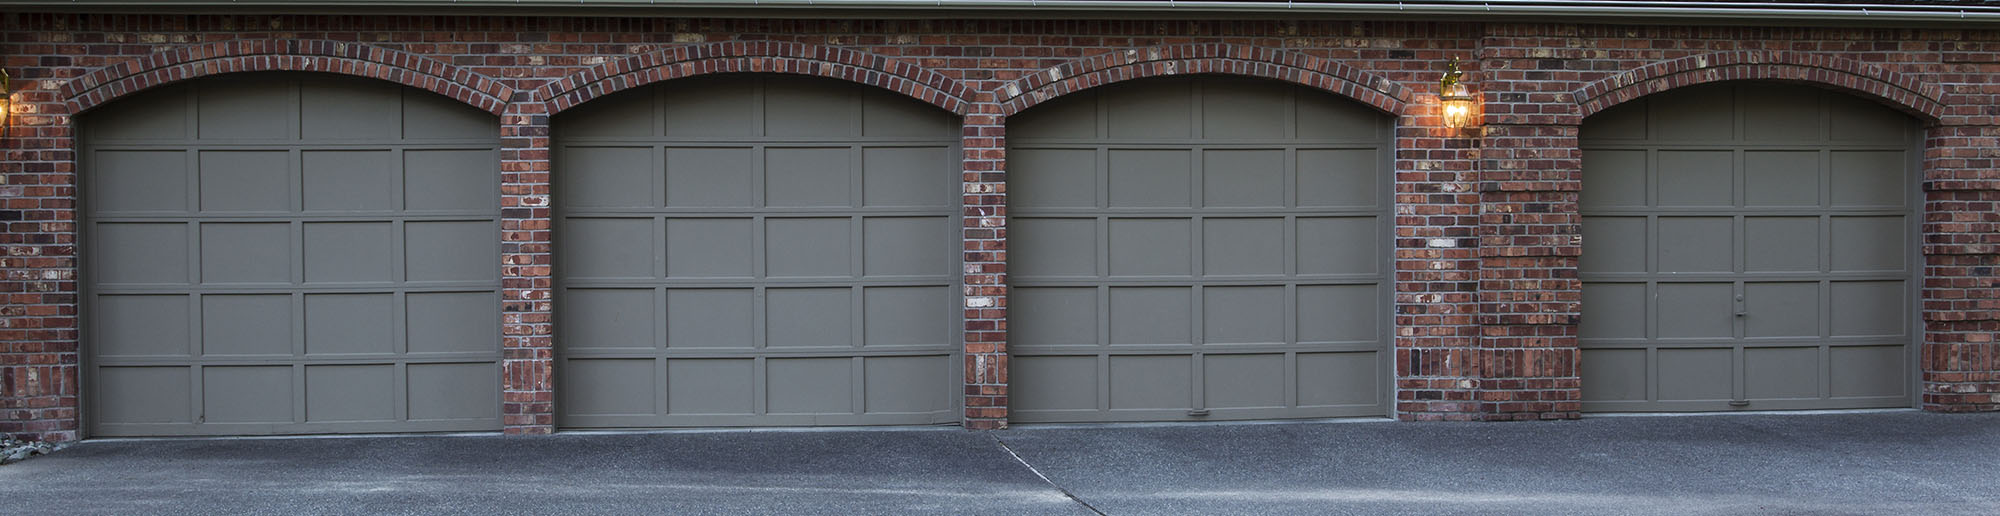 Garage door repair boise eagle star emmett meridian nampa caldwell we make life easier and better by saving you time and money whatever your garage door rubansaba